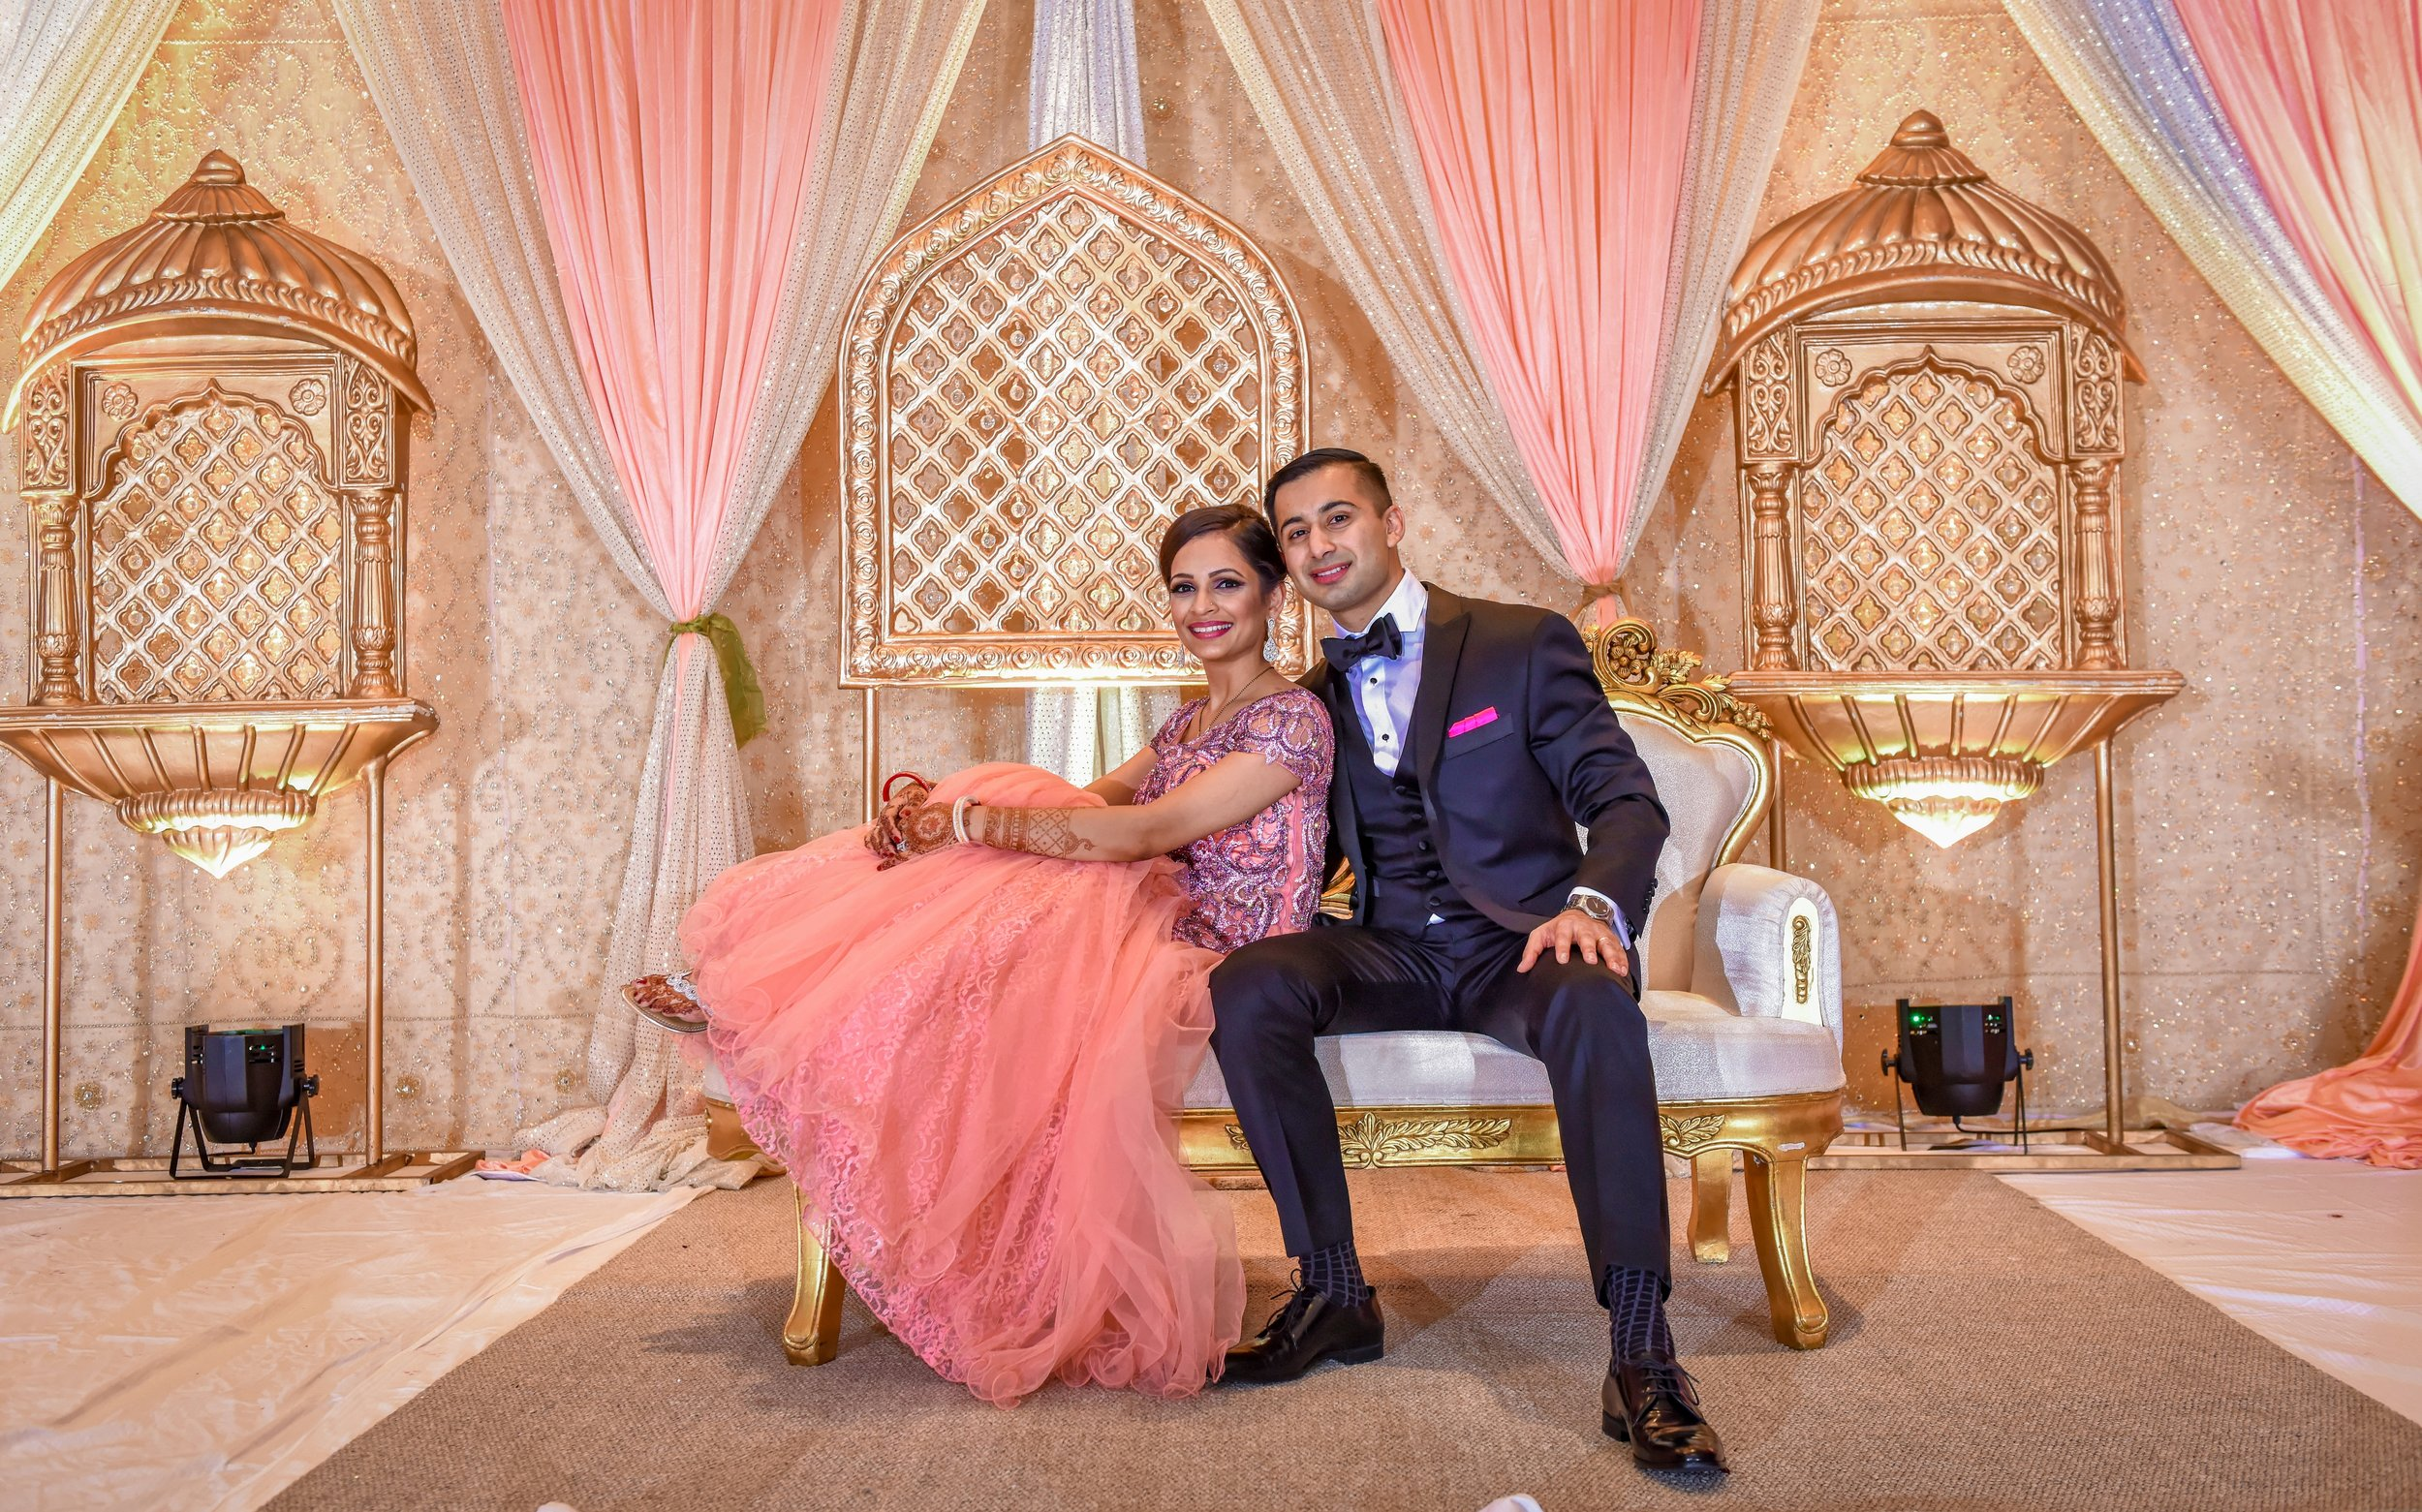 Boston Indian Wedding | Hinal + Gaurav - MEMORIES PHOTO + VIDEO